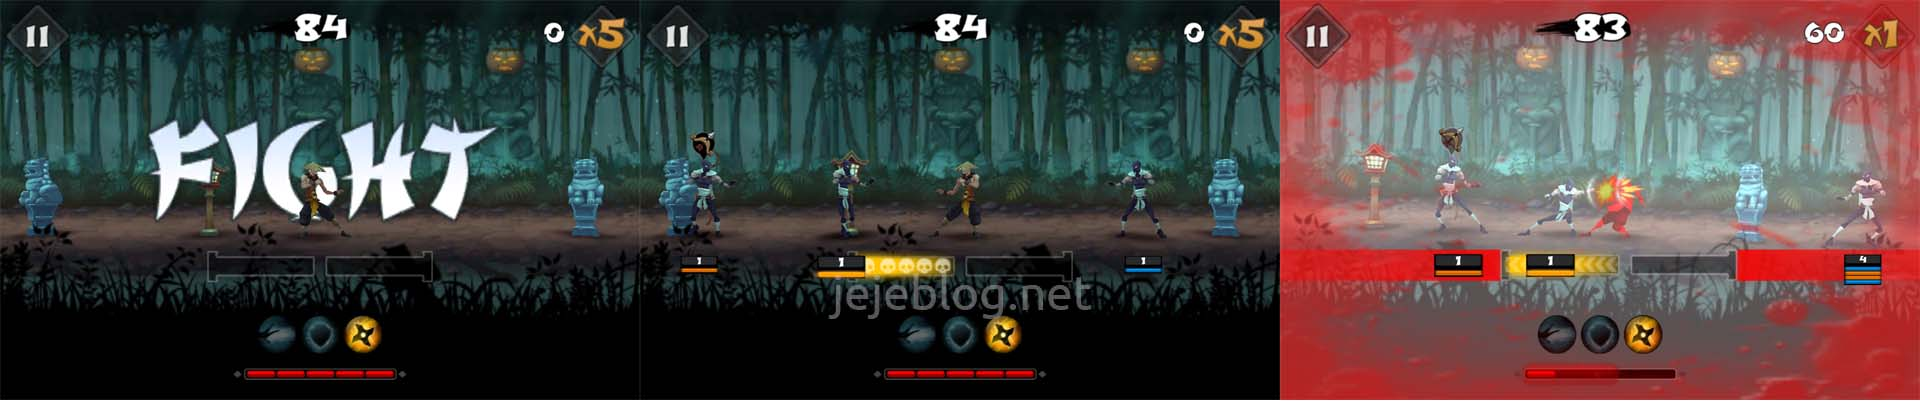 Review Game Fatal Fight